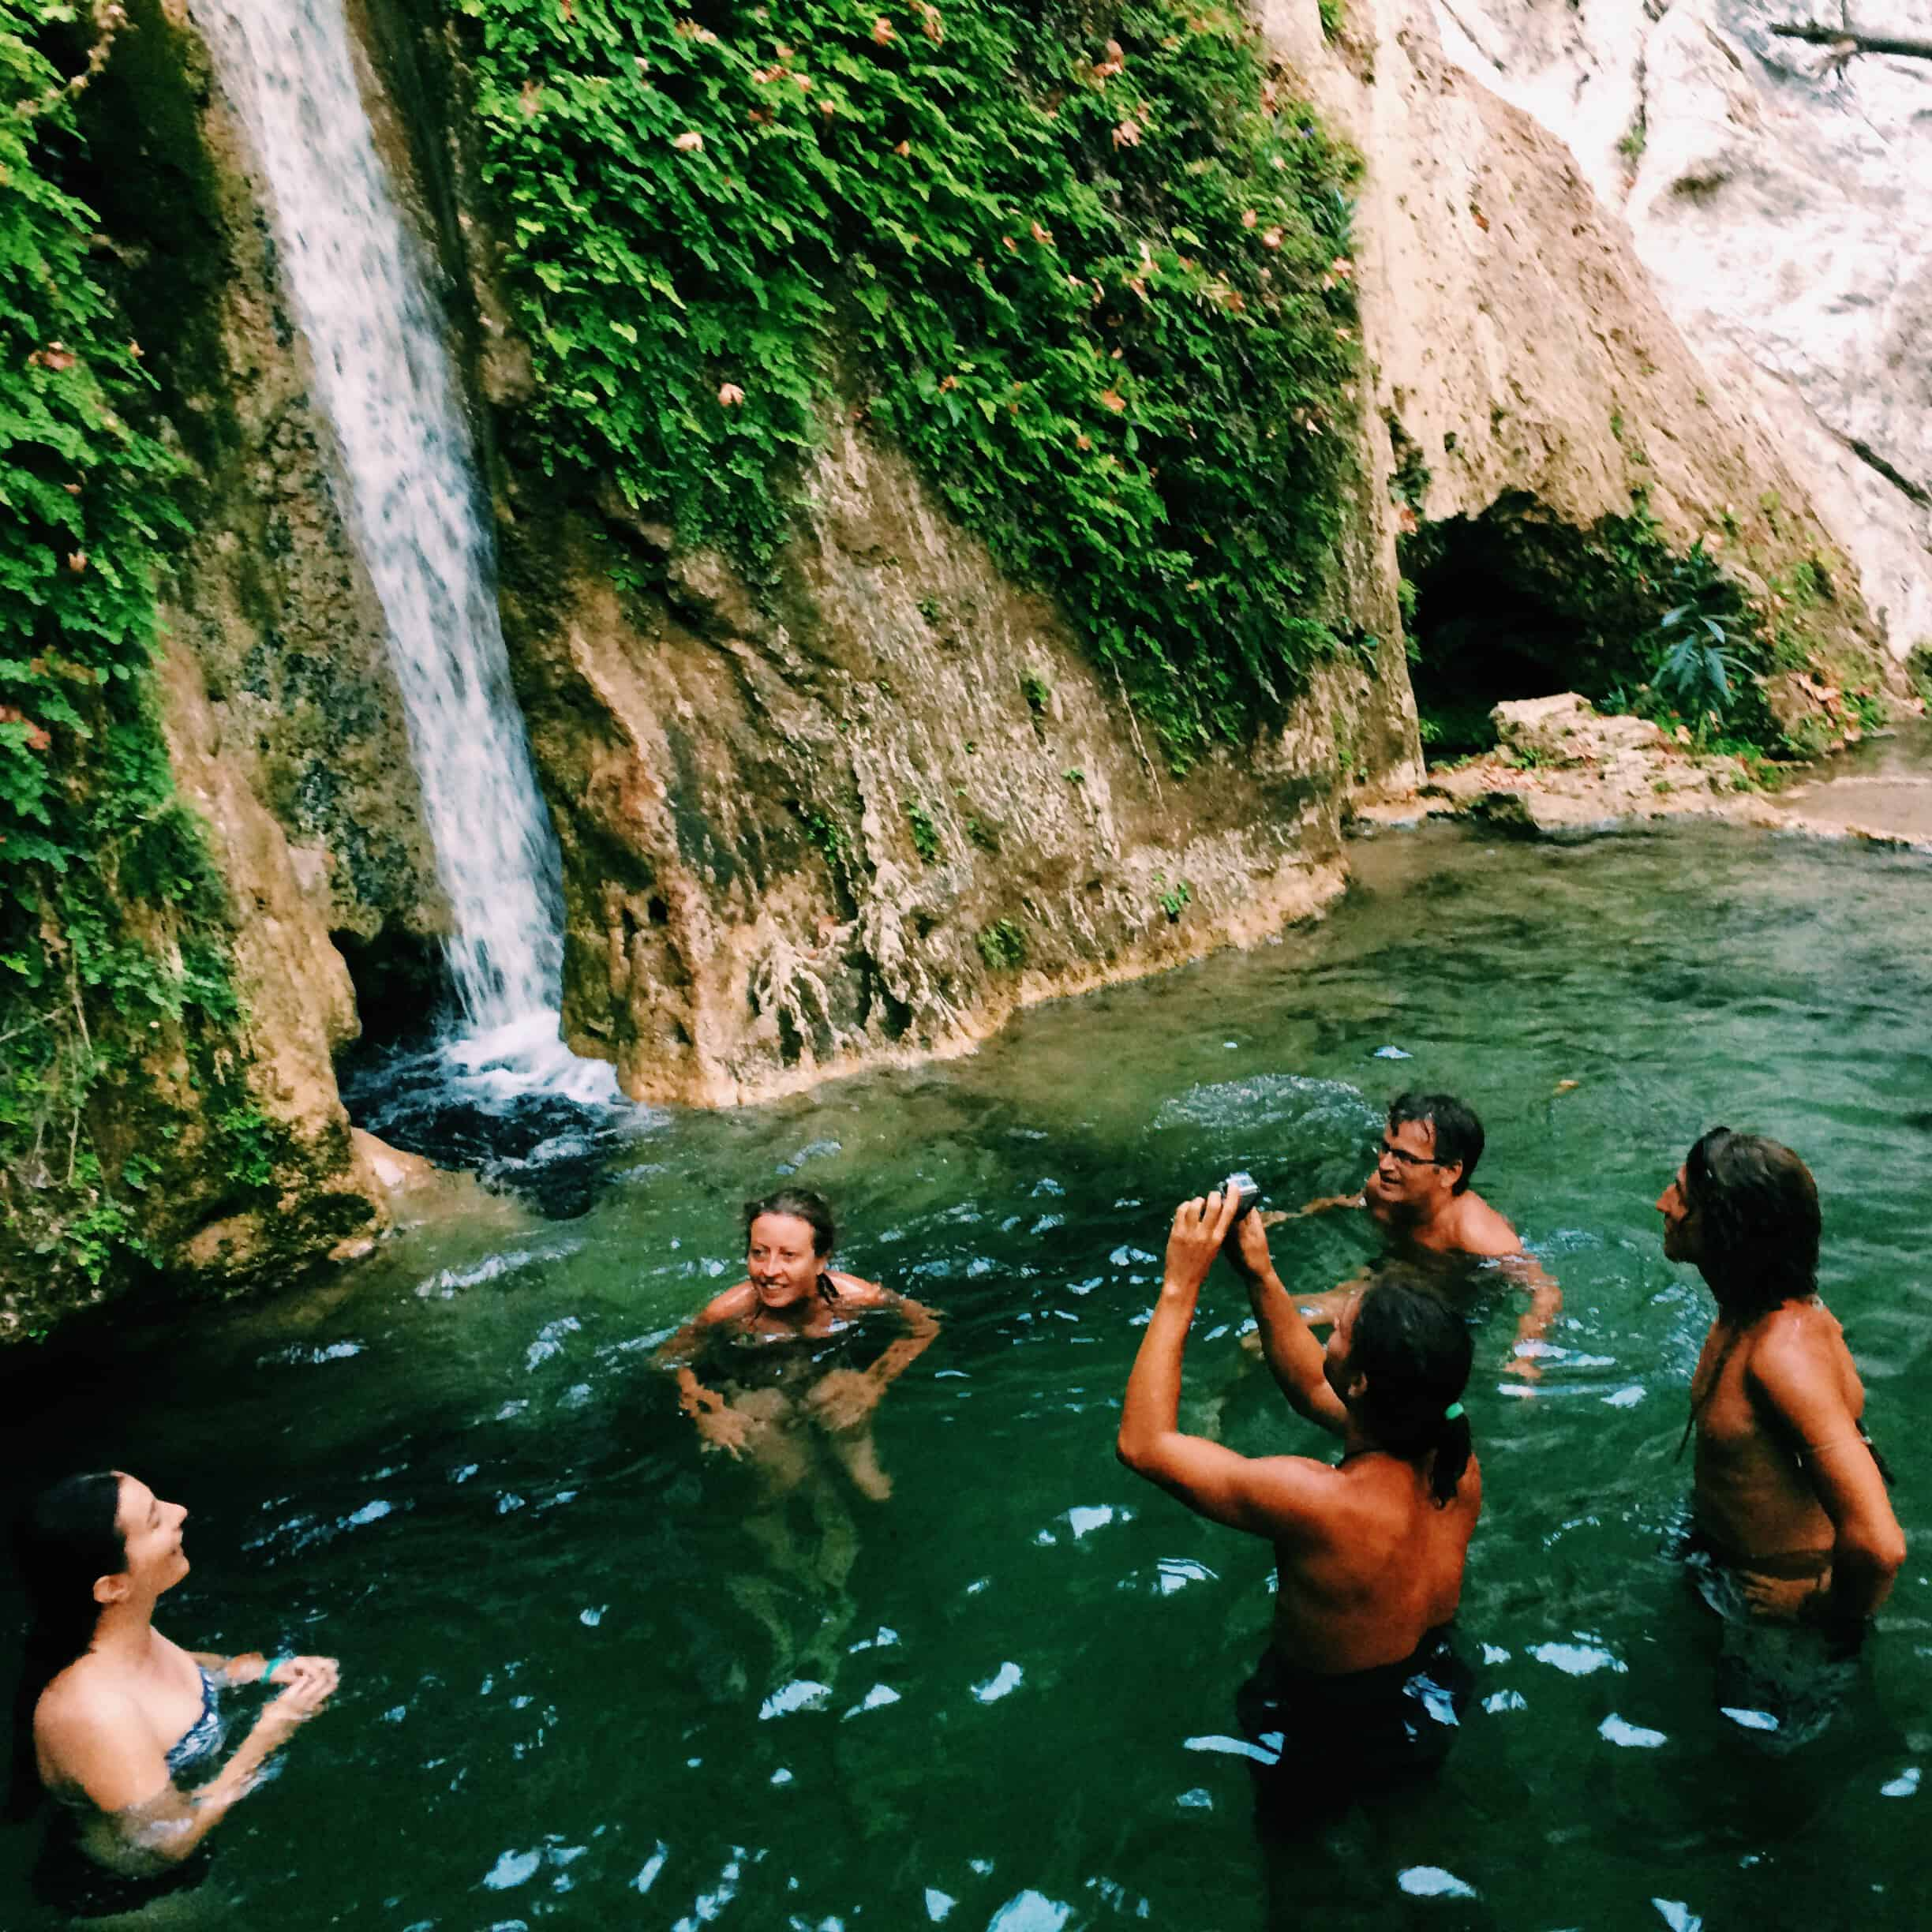 Kabak waterfalls.